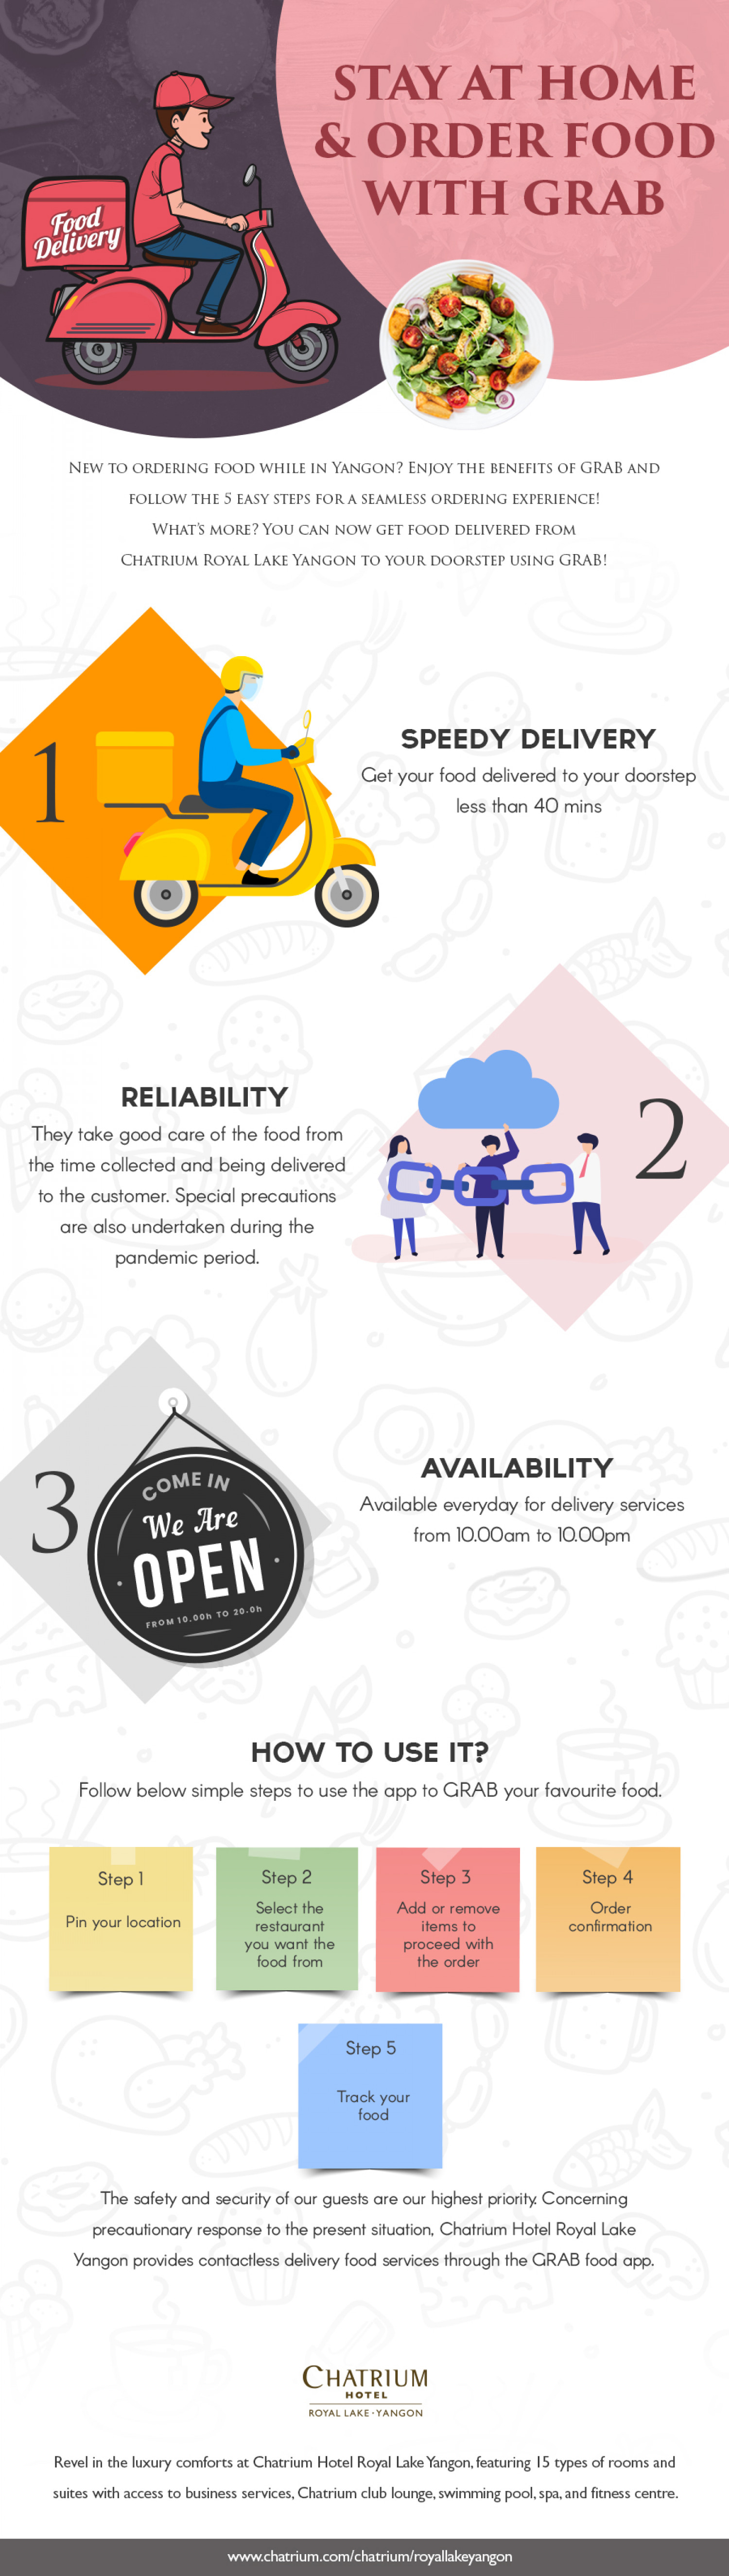 Stay at Home & Order Food with GRAB Infographic